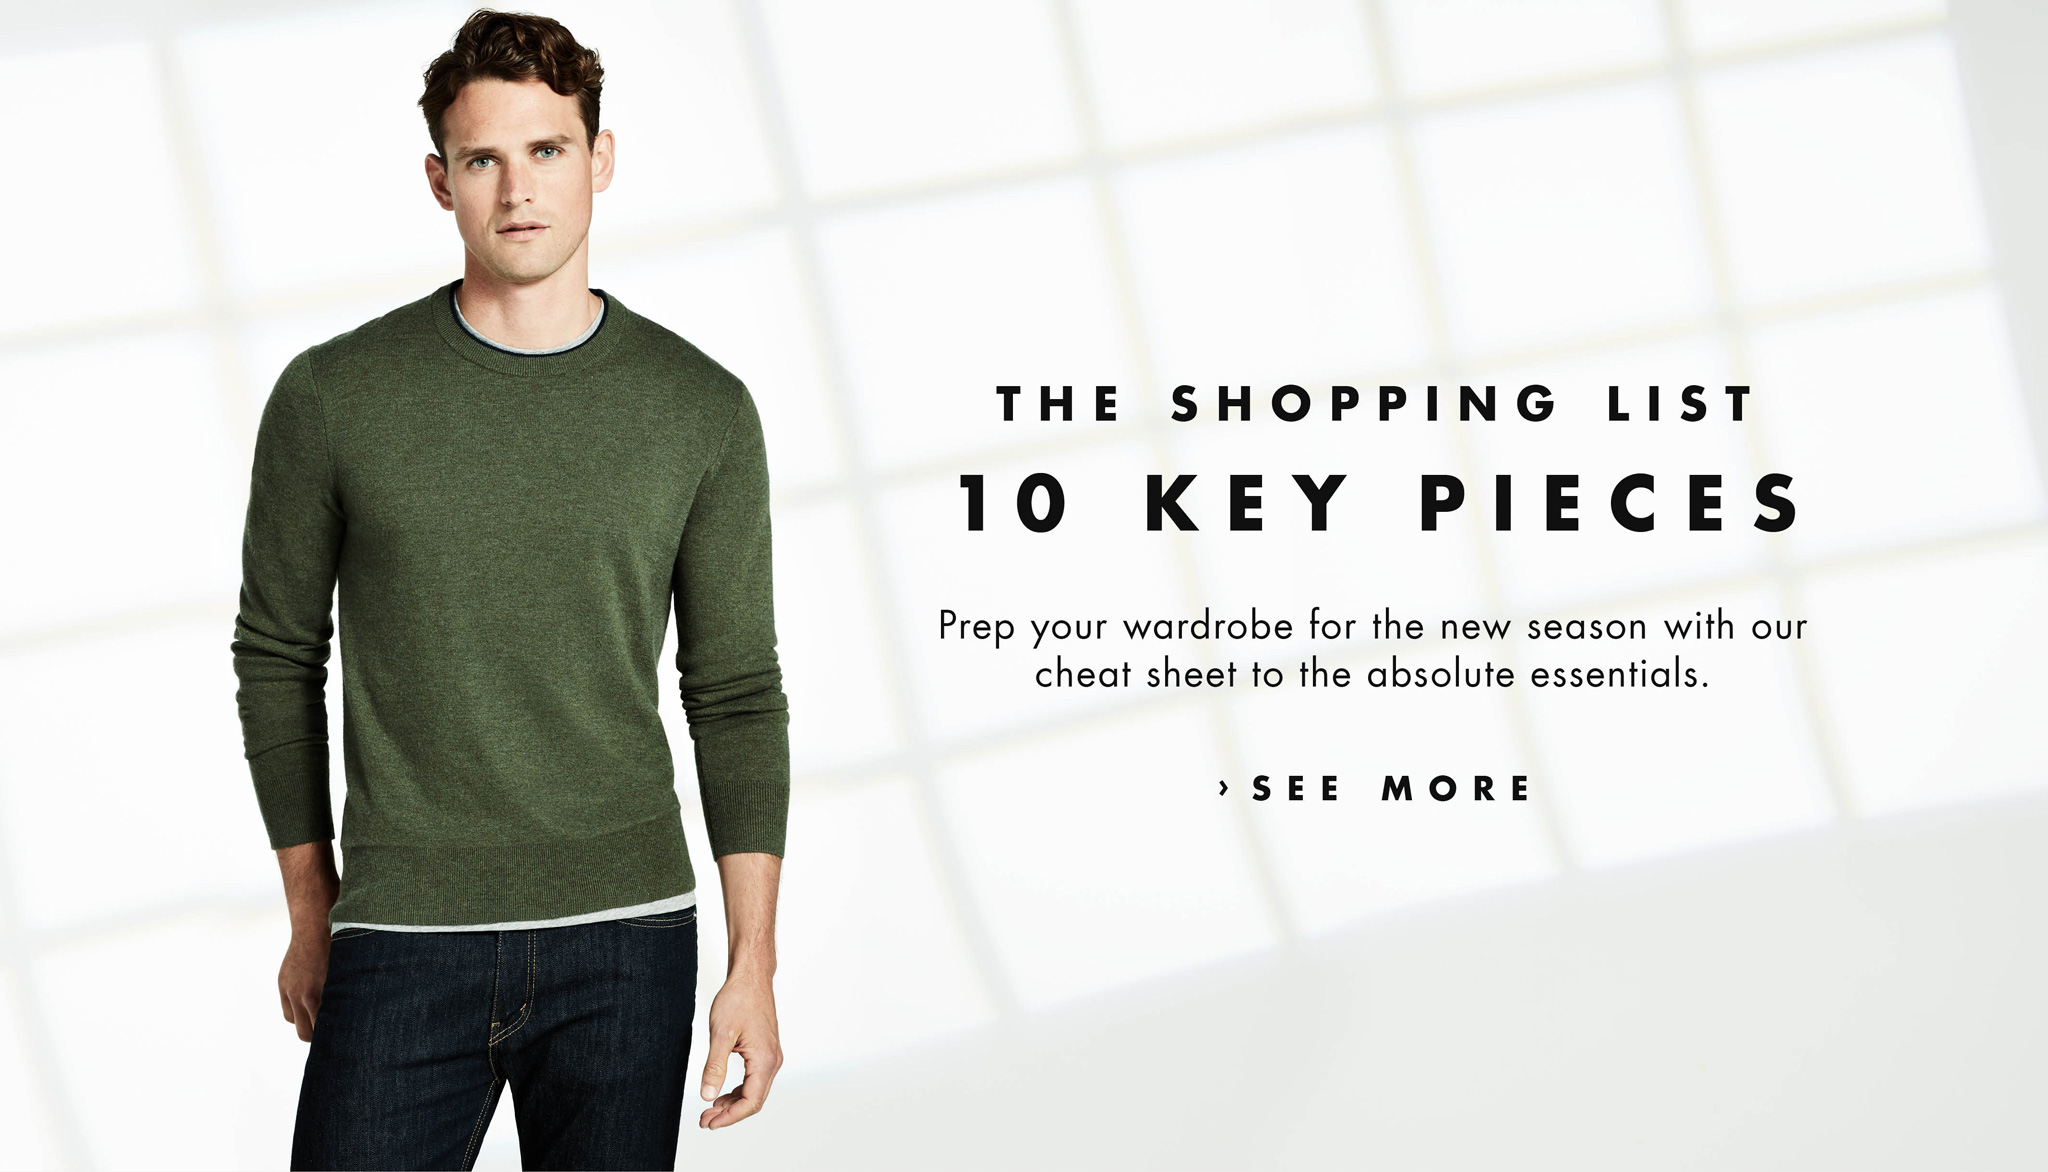 The Shopping List 10 Key Pieces